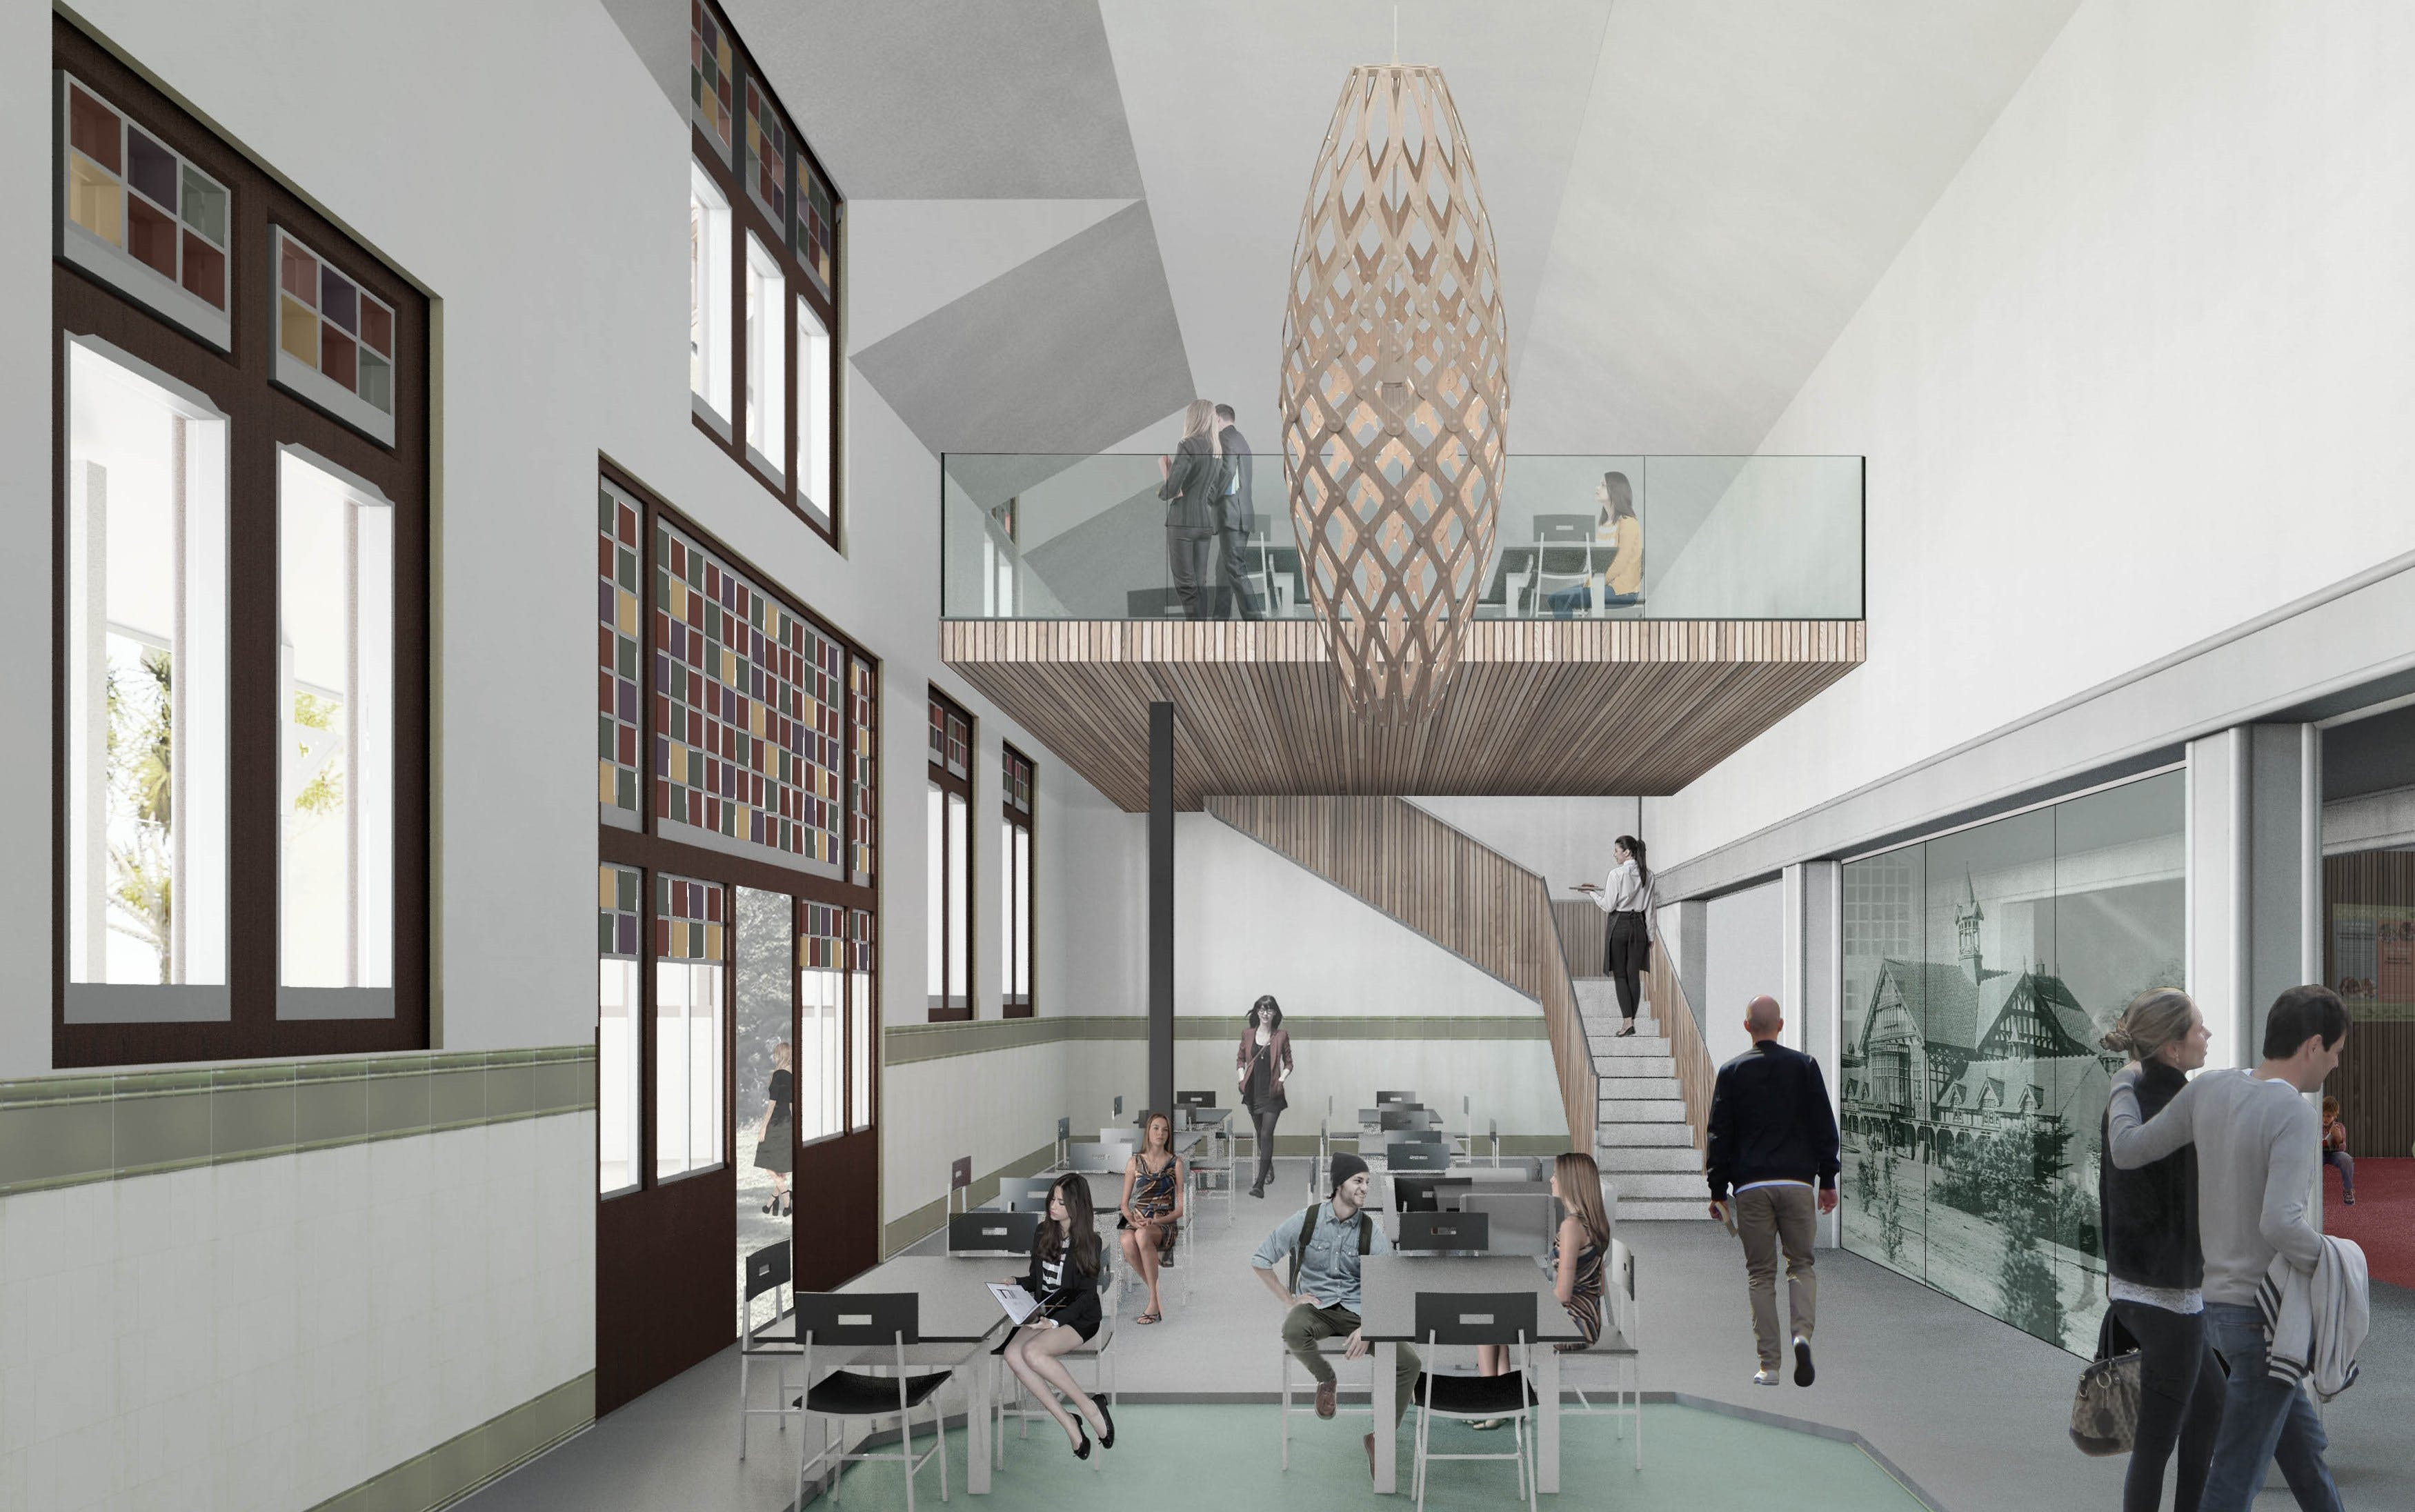 Artists Impression Of The Museum Cafe Concept Design. Dpa Architects